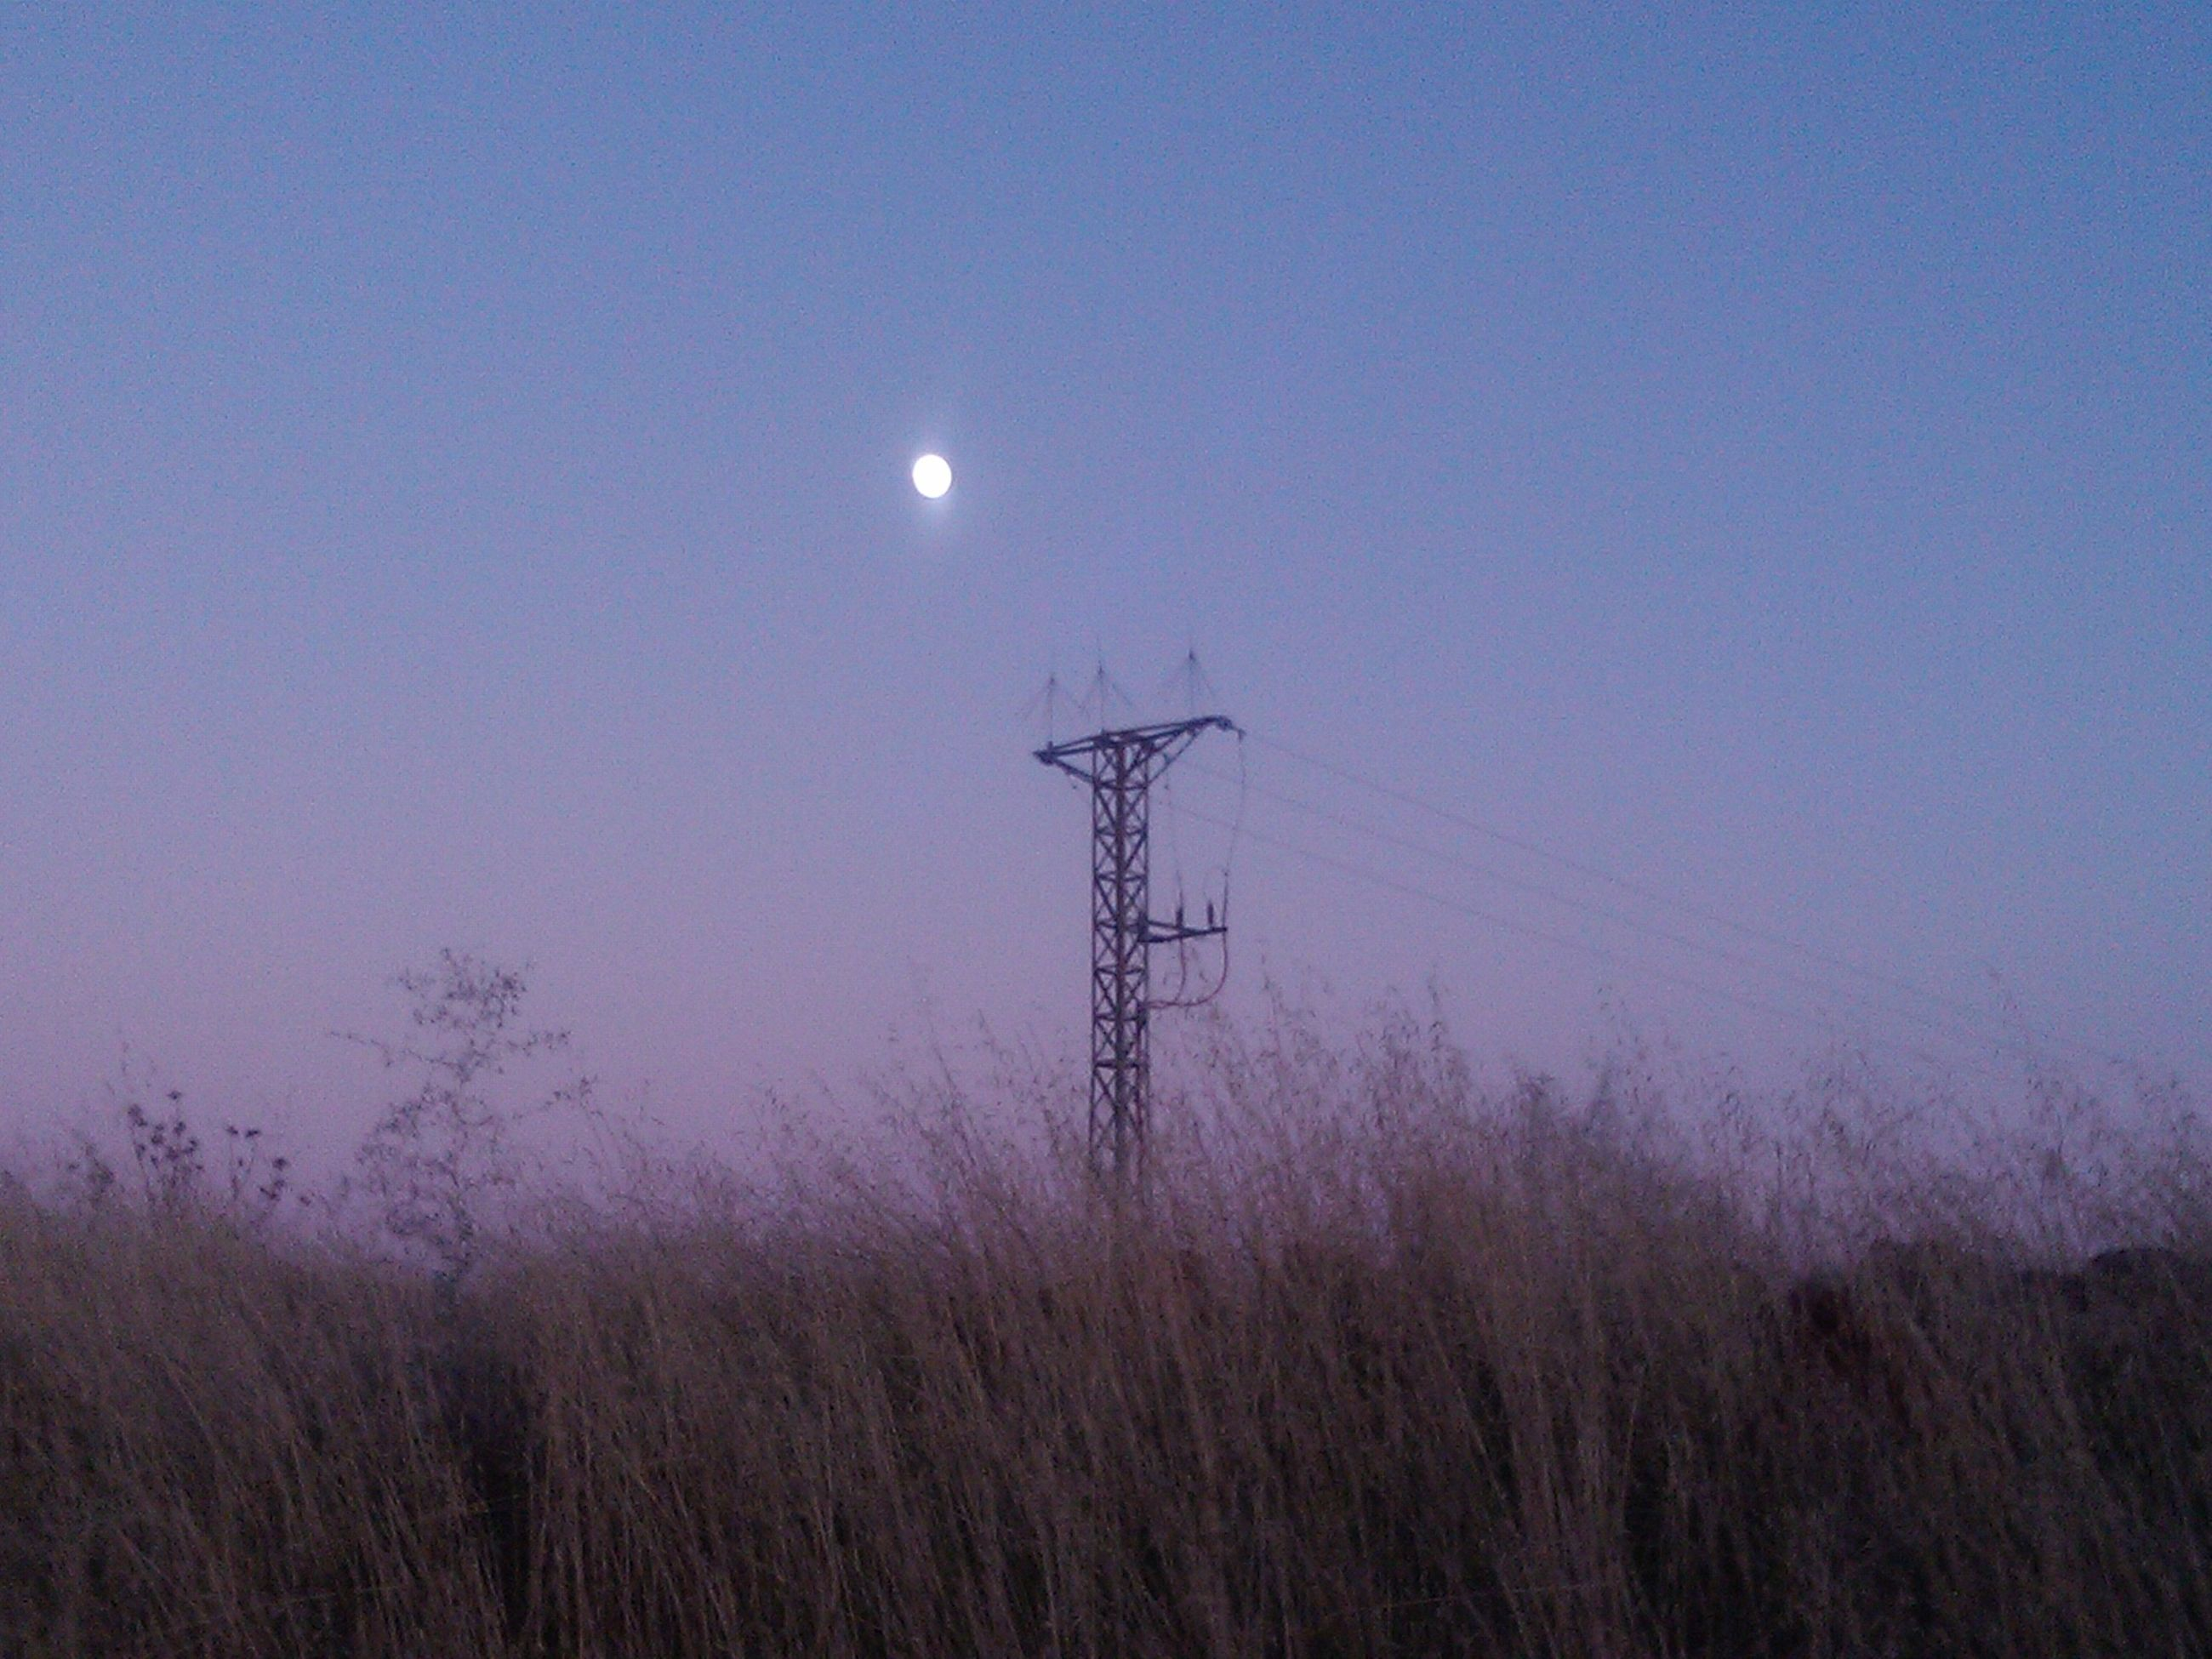 clear sky, electricity, moon, tranquility, tranquil scene, copy space, nature, fuel and power generation, dusk, power line, electricity pylon, beauty in nature, scenics, silhouette, technology, low angle view, night, power supply, sky, field